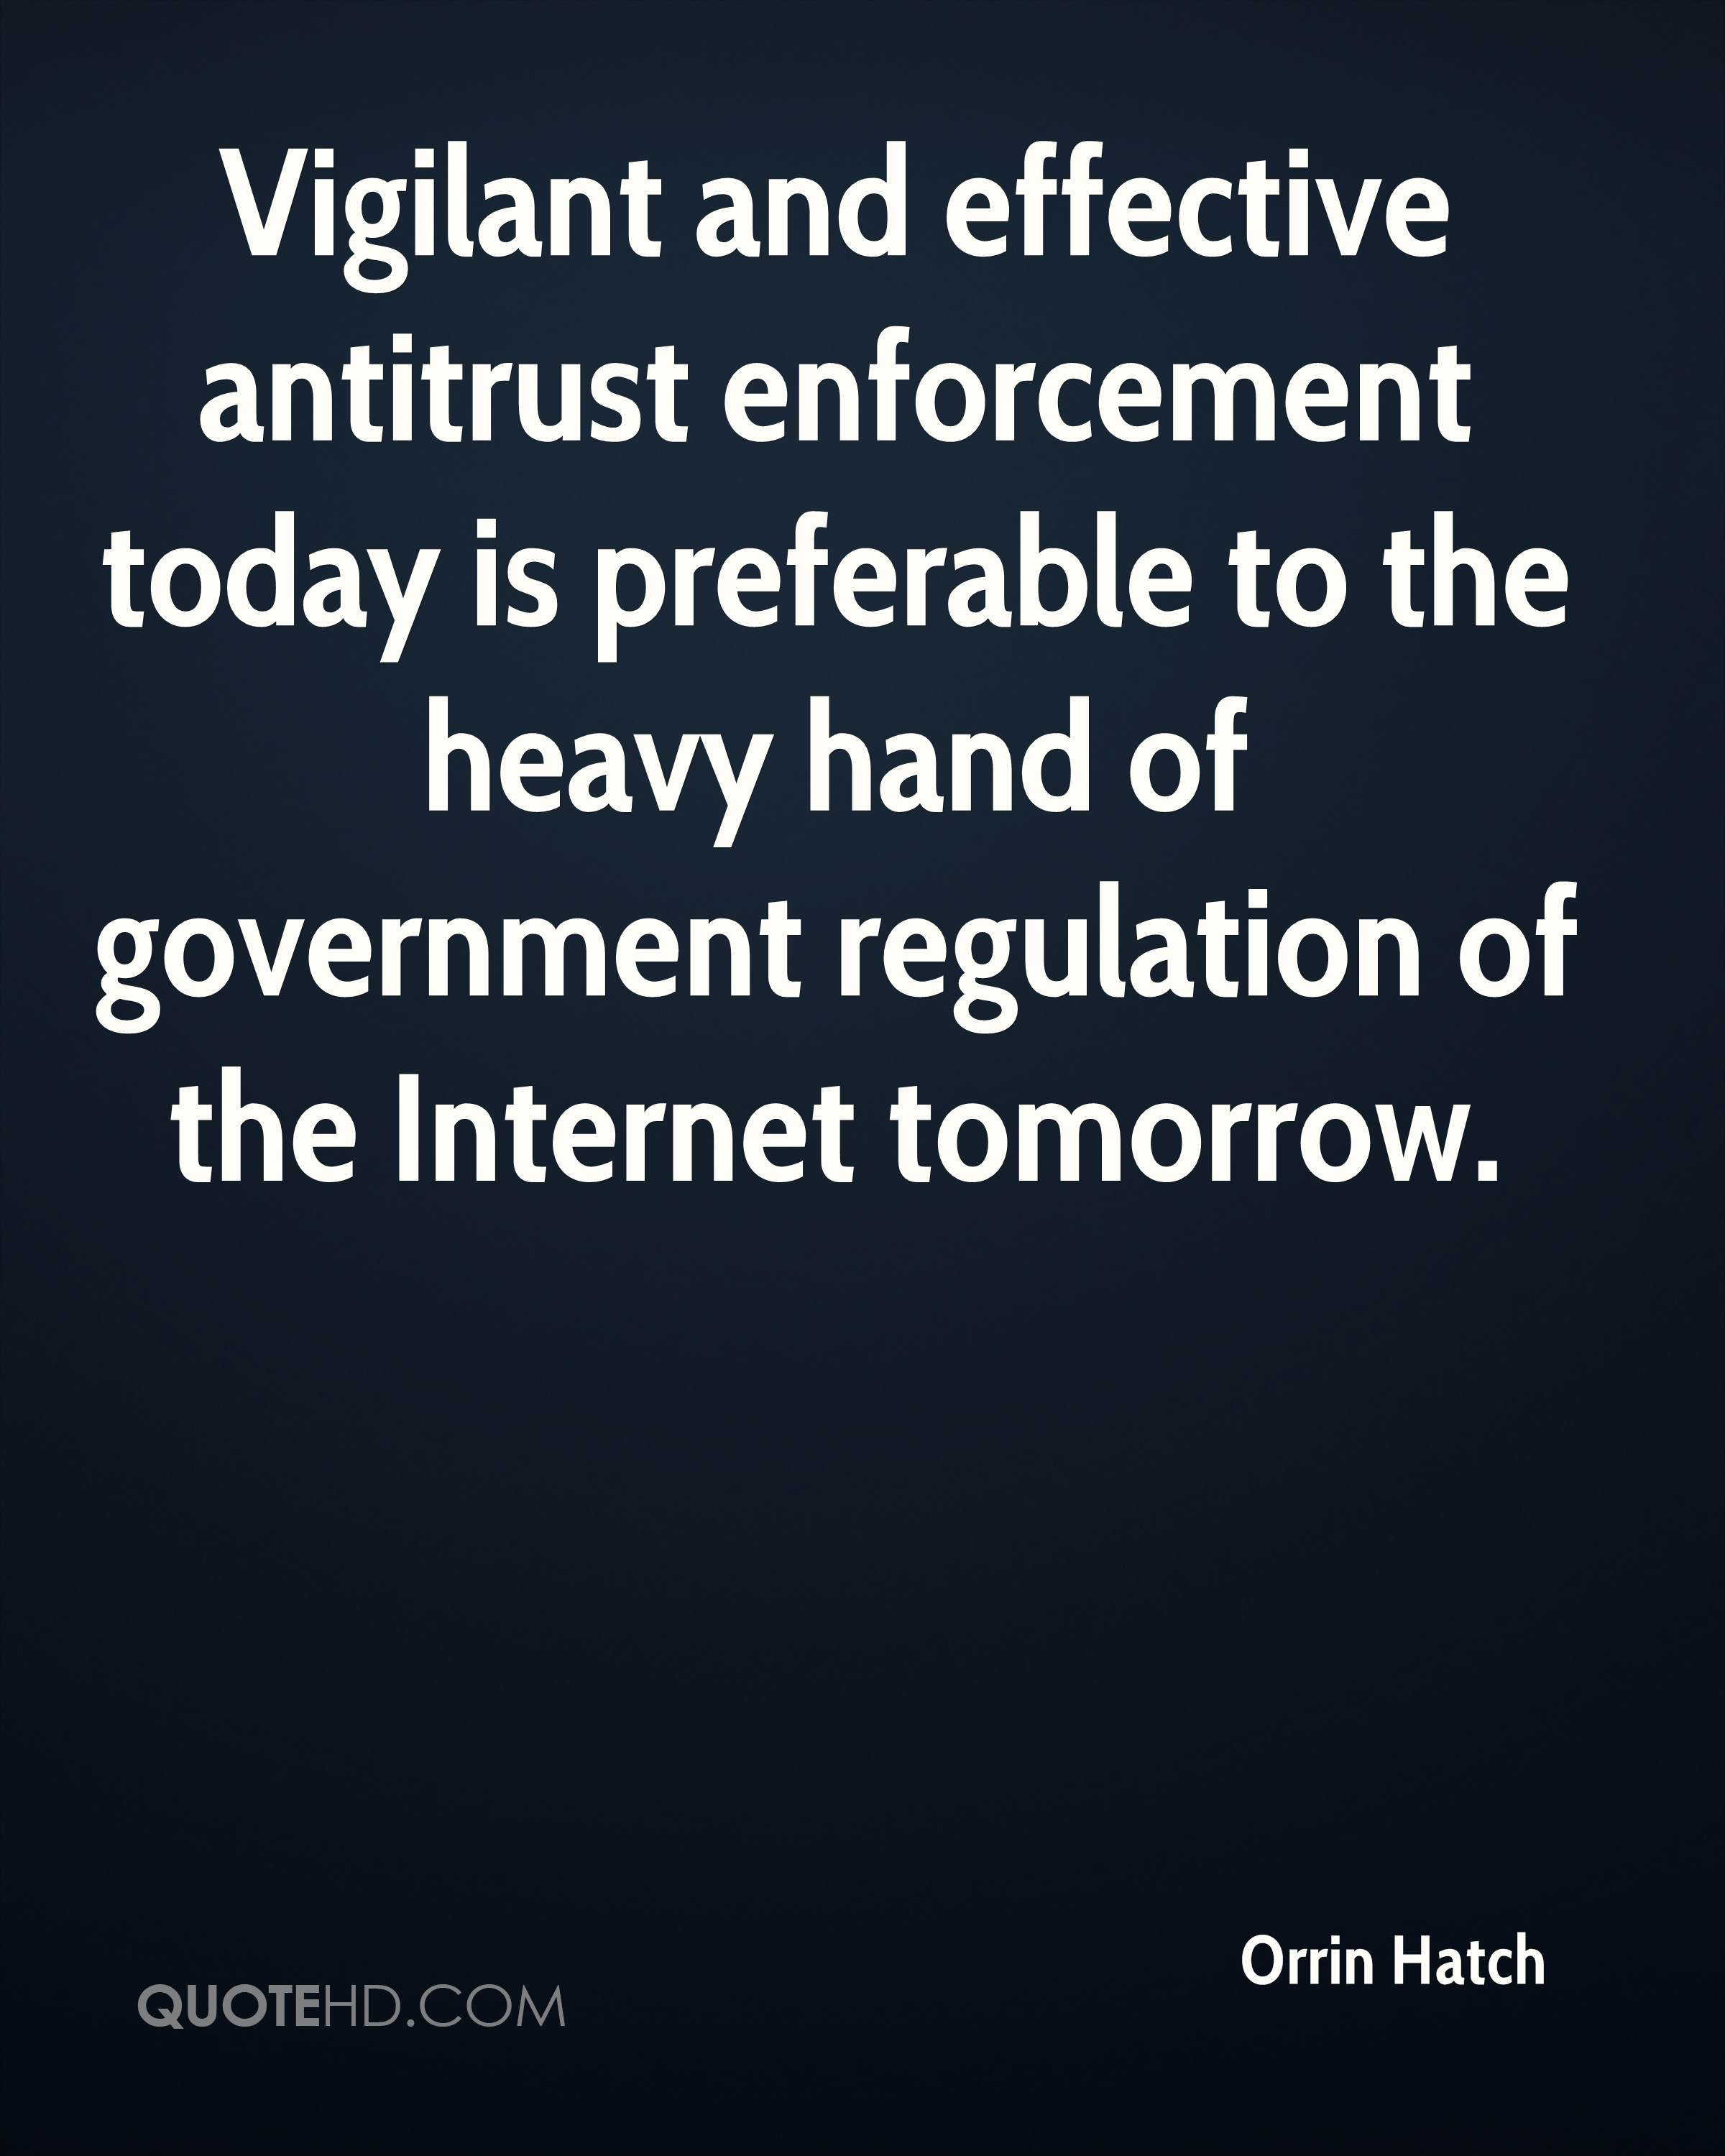 Vigilant and effective antitrust enforcement today is preferable to the heavy hand of government regulation of the Internet tomorrow.